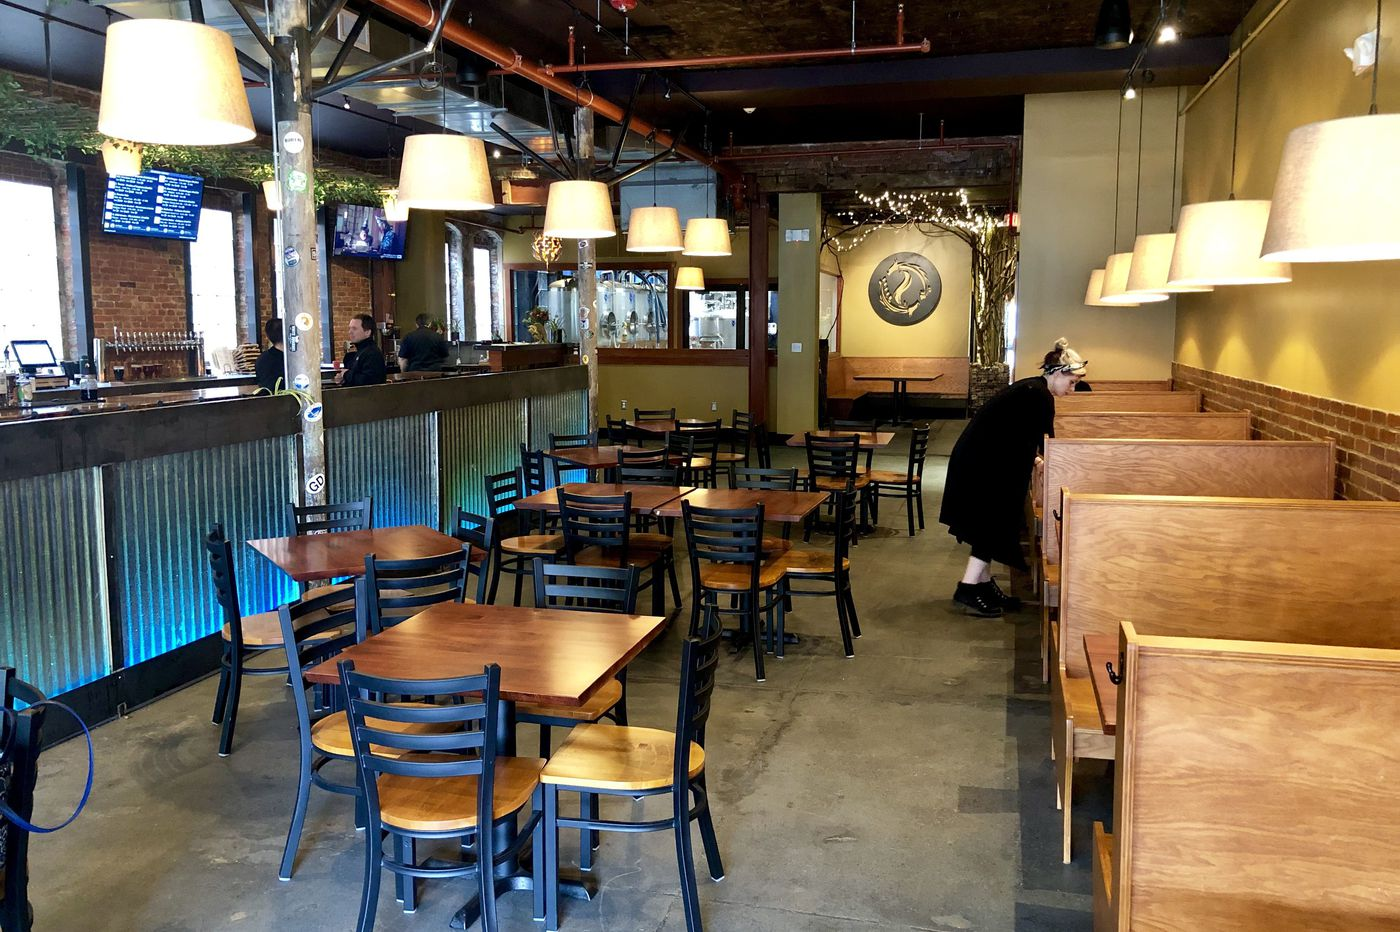 Beer here: A (micro) brewing boom in Eastern Montco